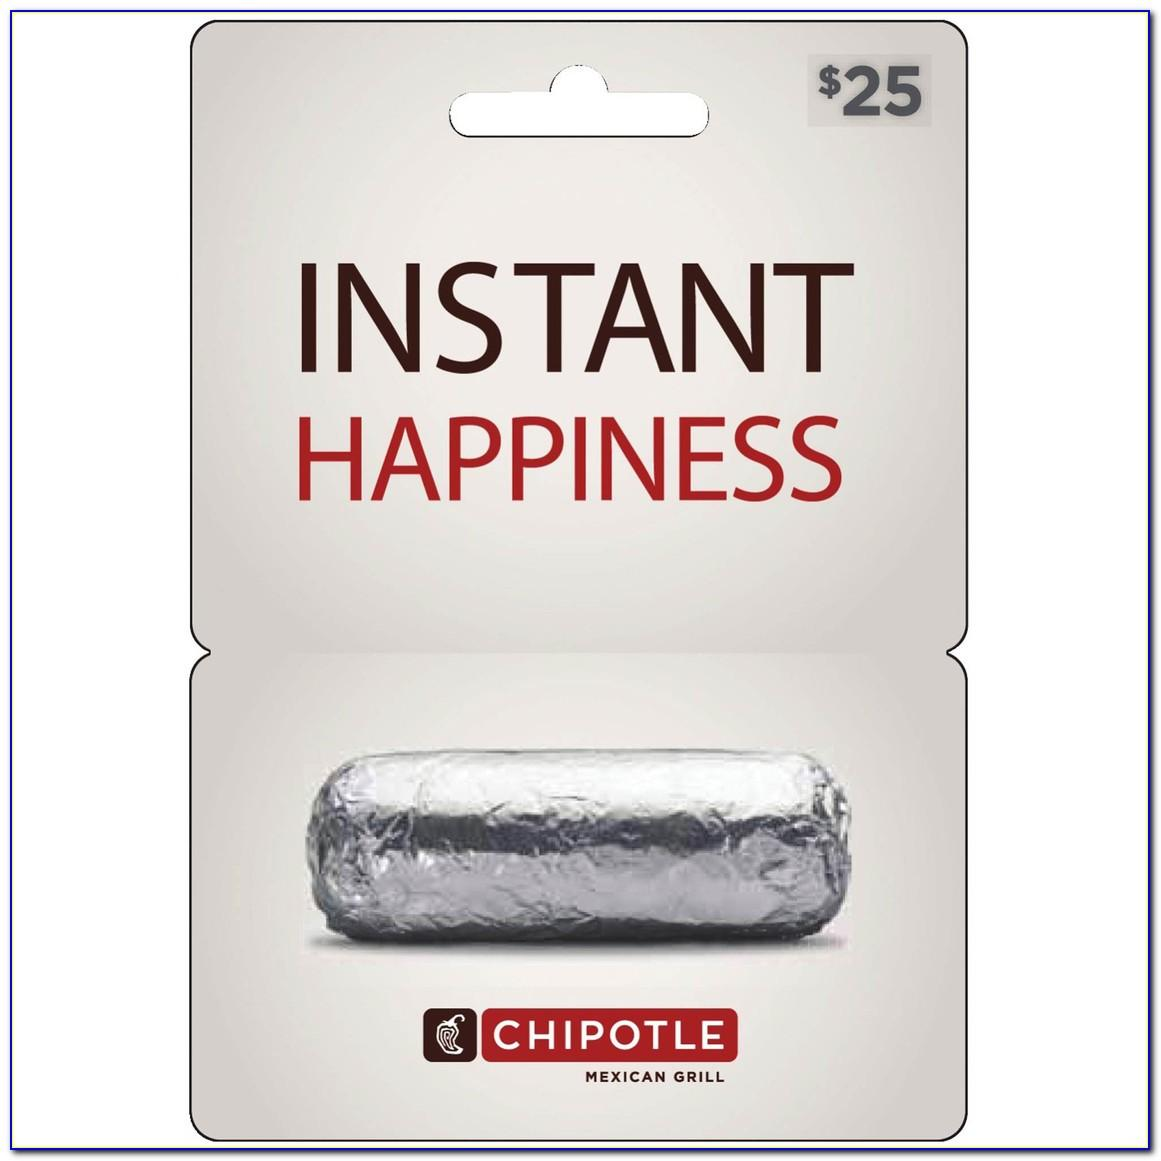 How To Get Chipotle Free Burrito Card